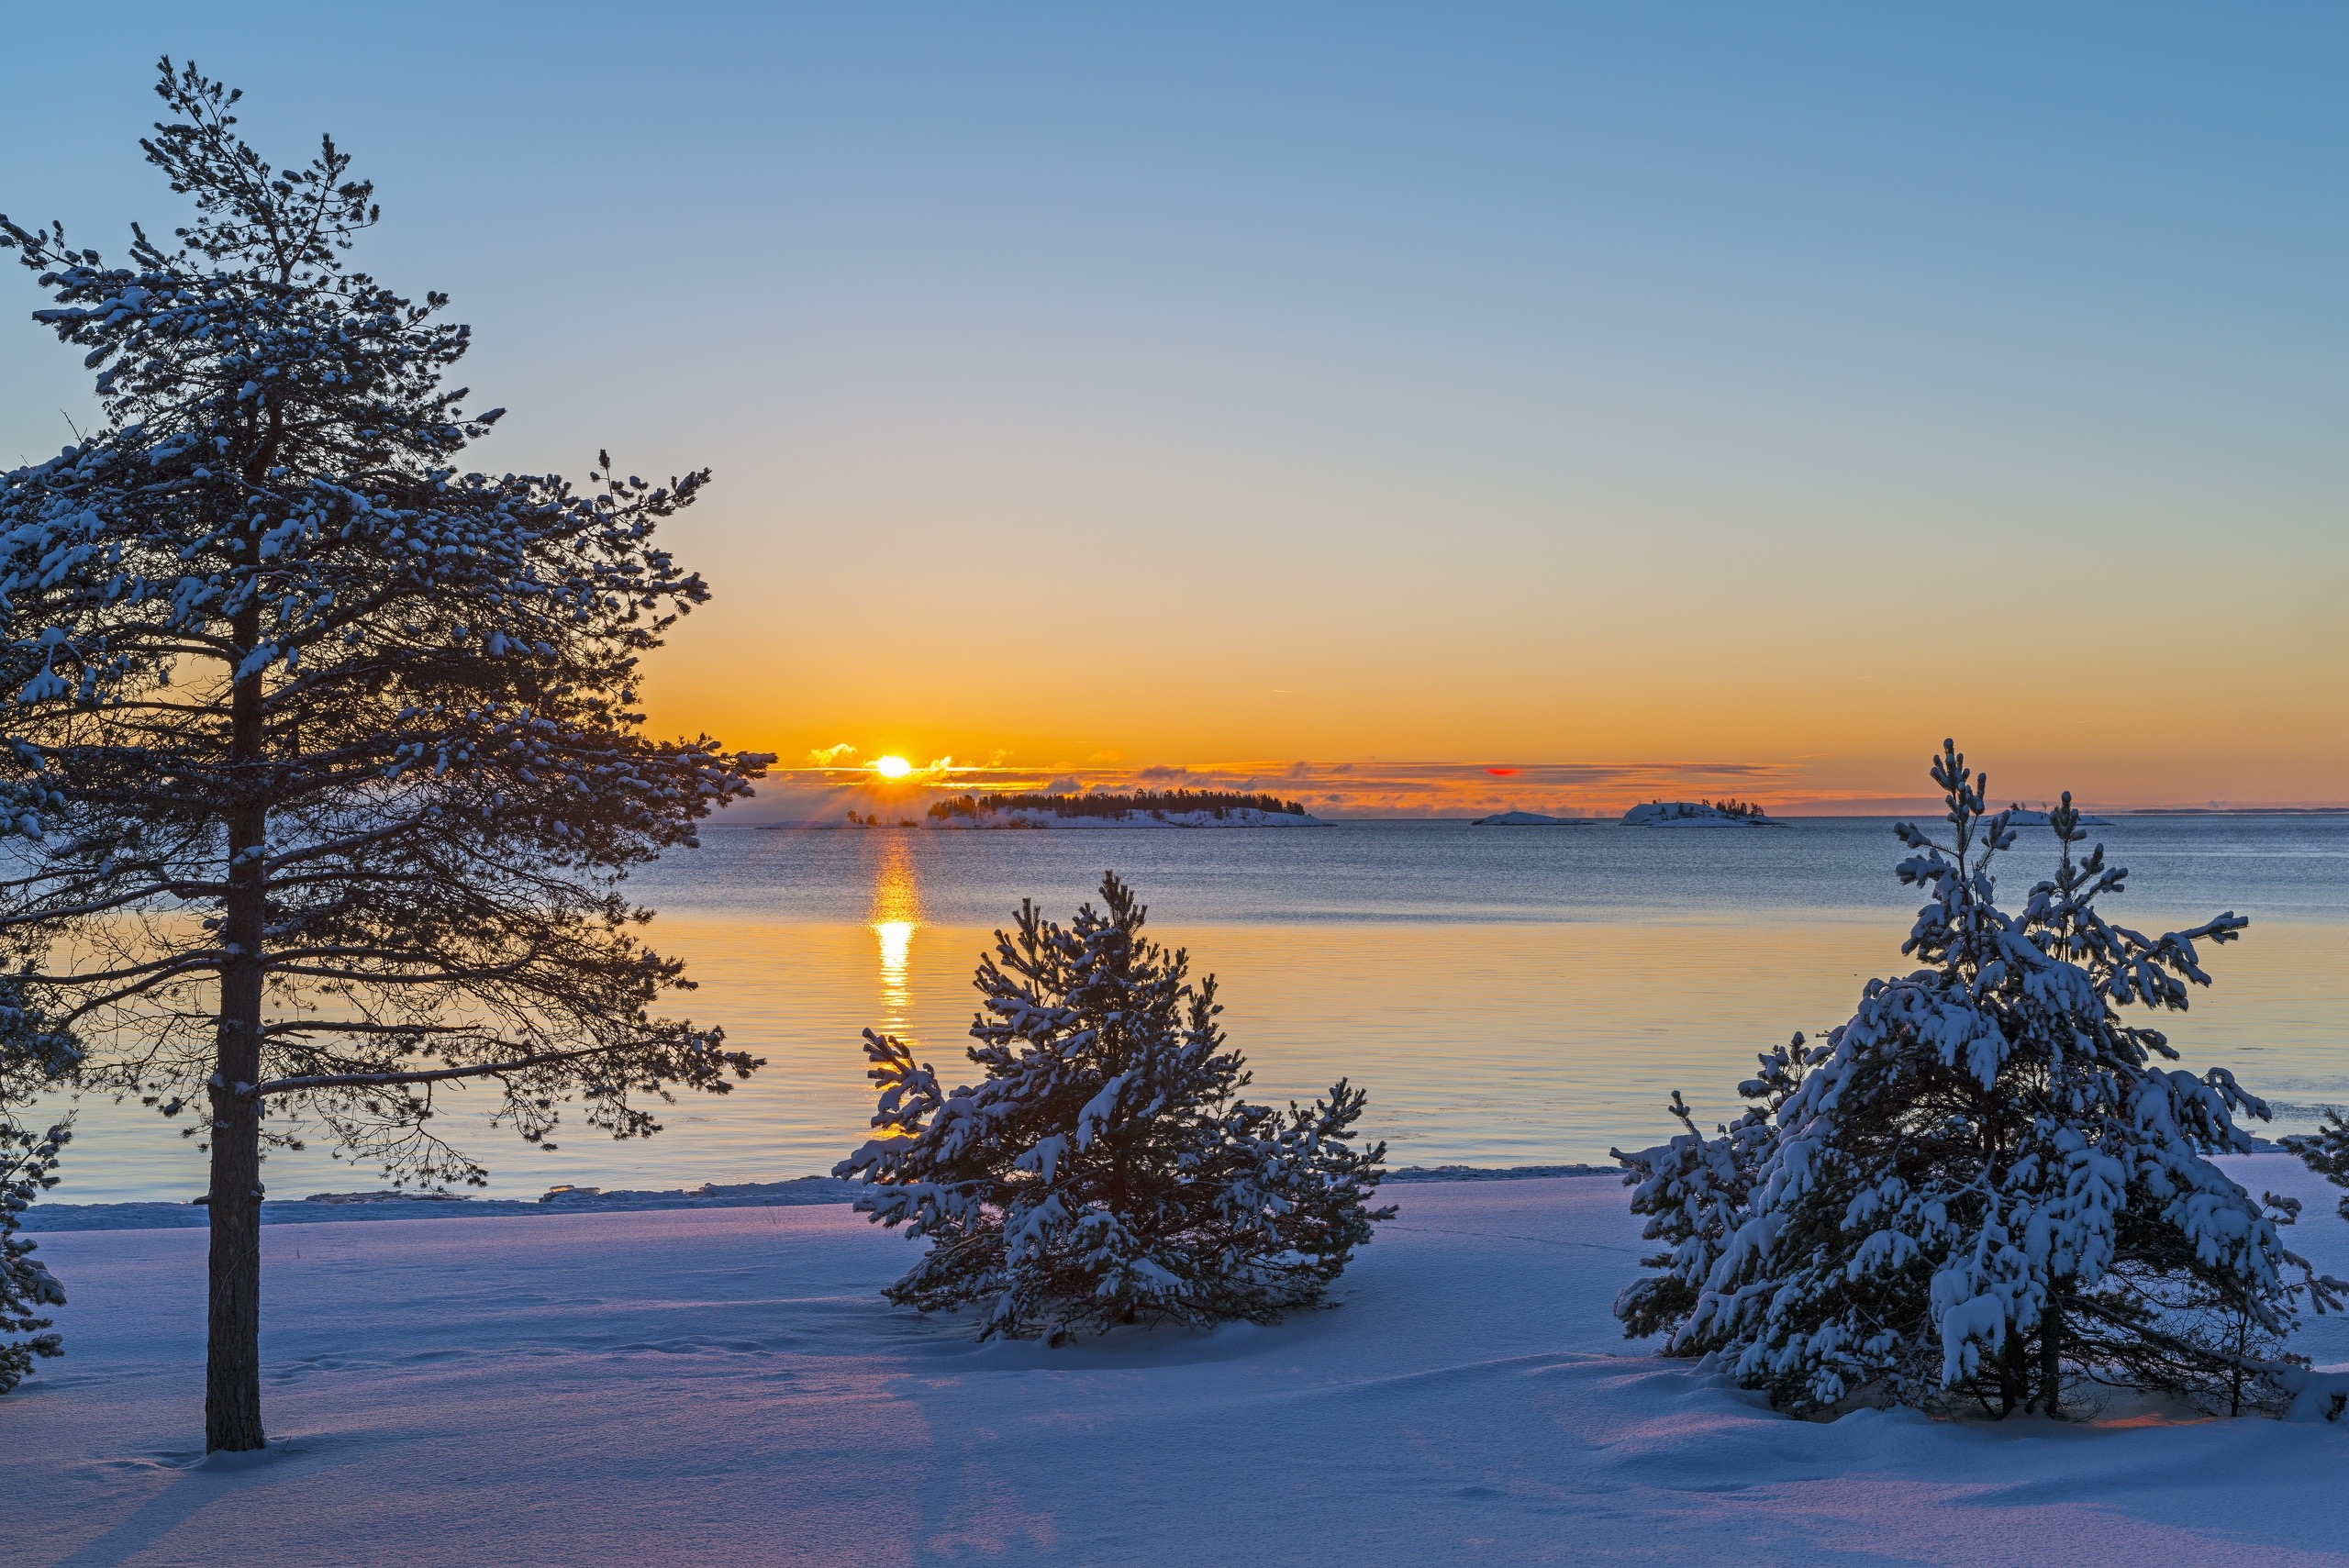 Kojonsaari photo. Sandy beach at winter time